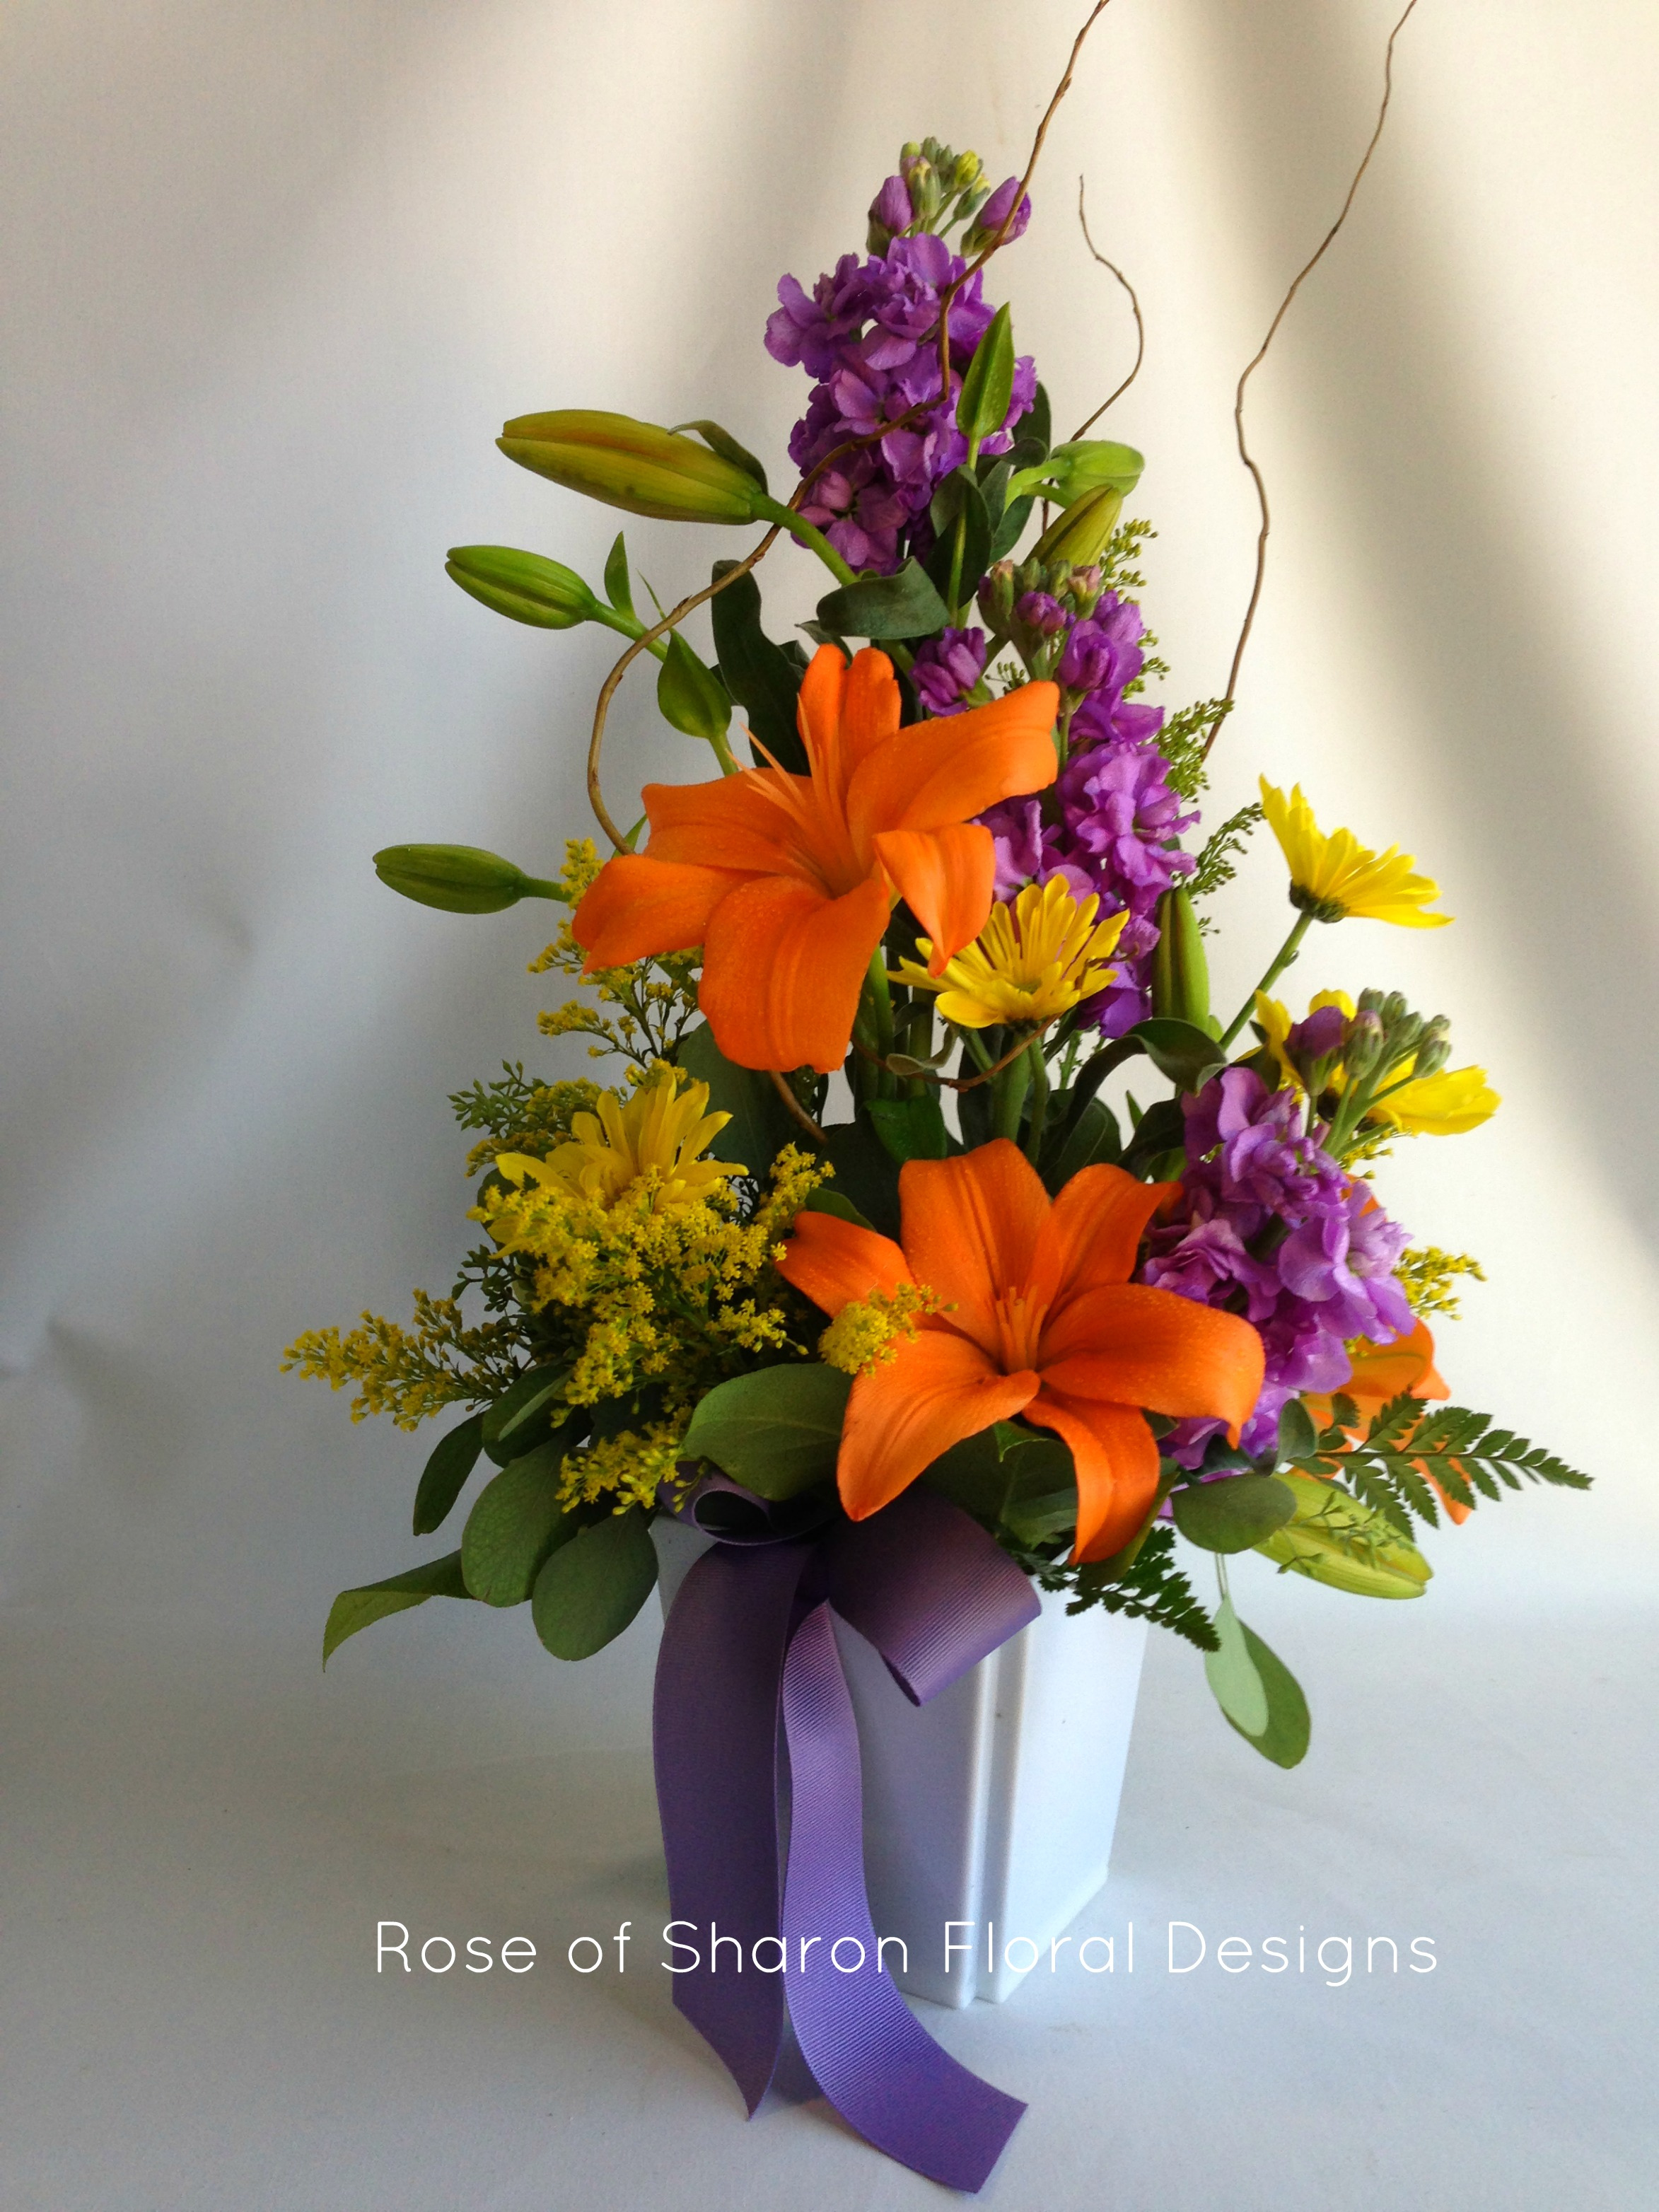 Lilies, Solidago and Stock, Rose of Sharon Floral Designs